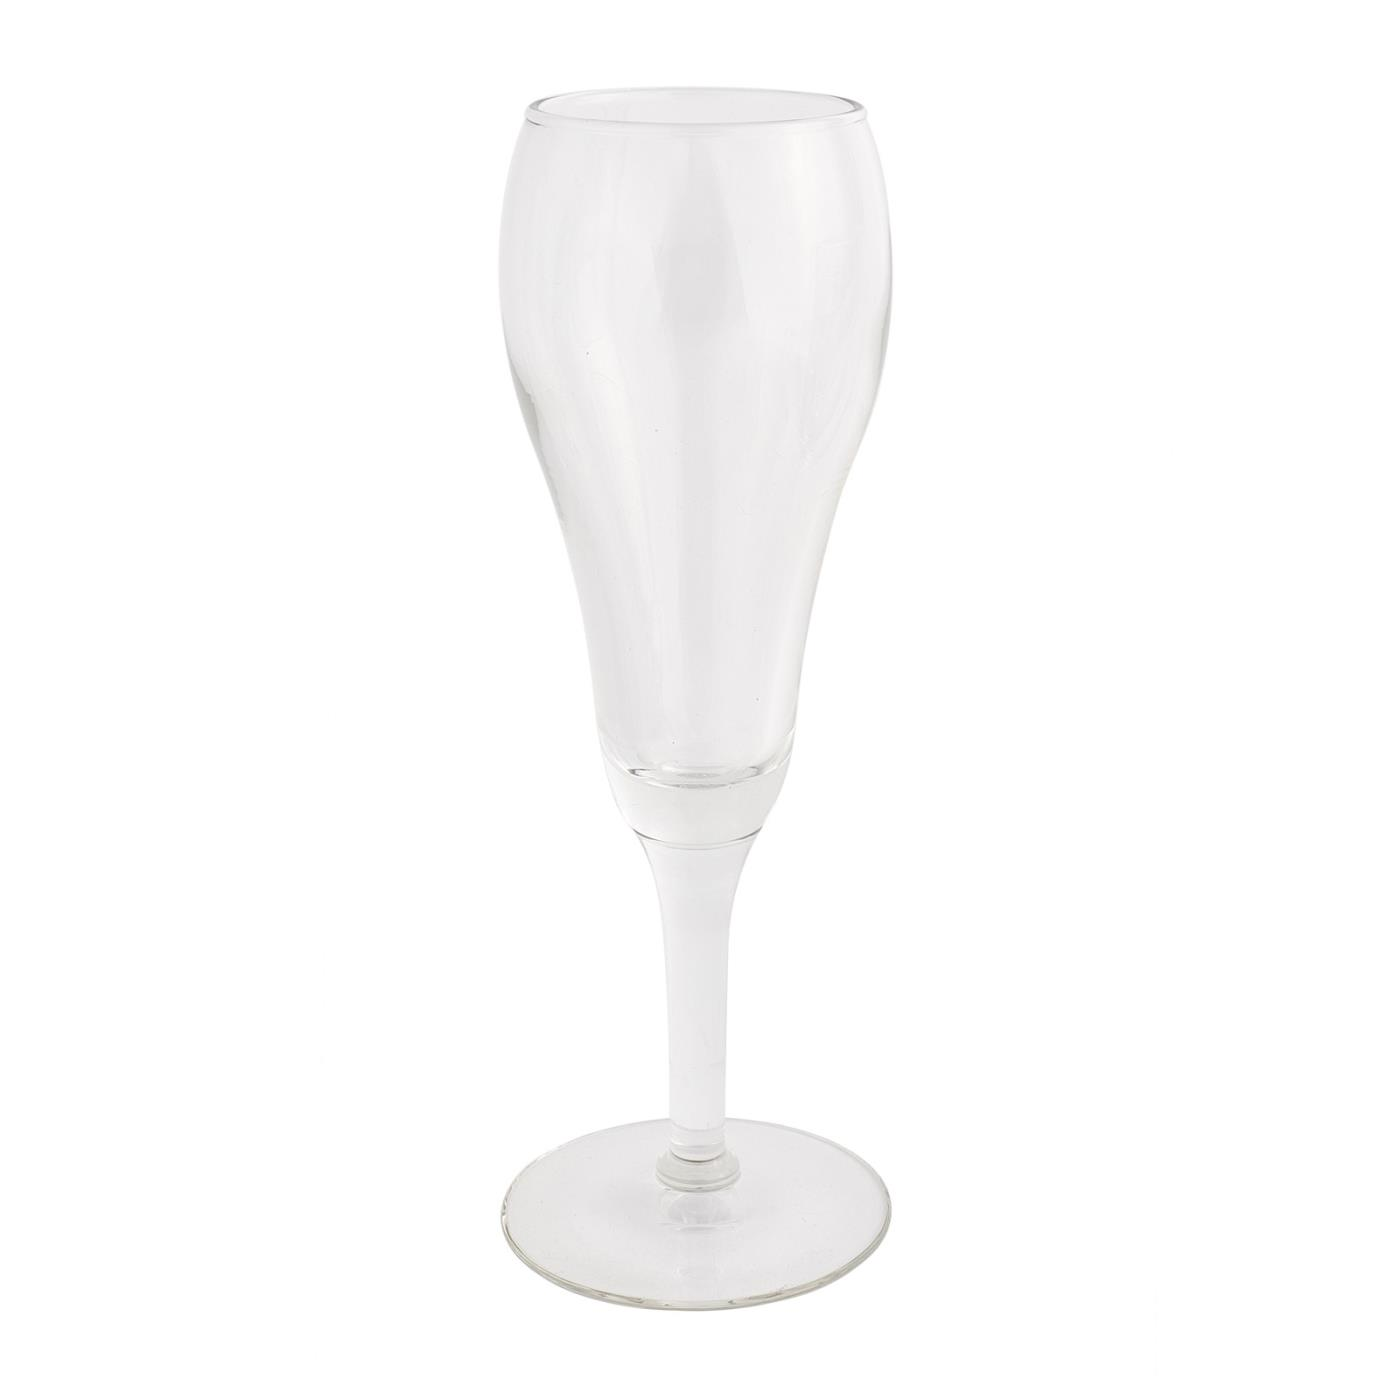 Standard All Purpose -  Standard Champagne Glass - Tulip